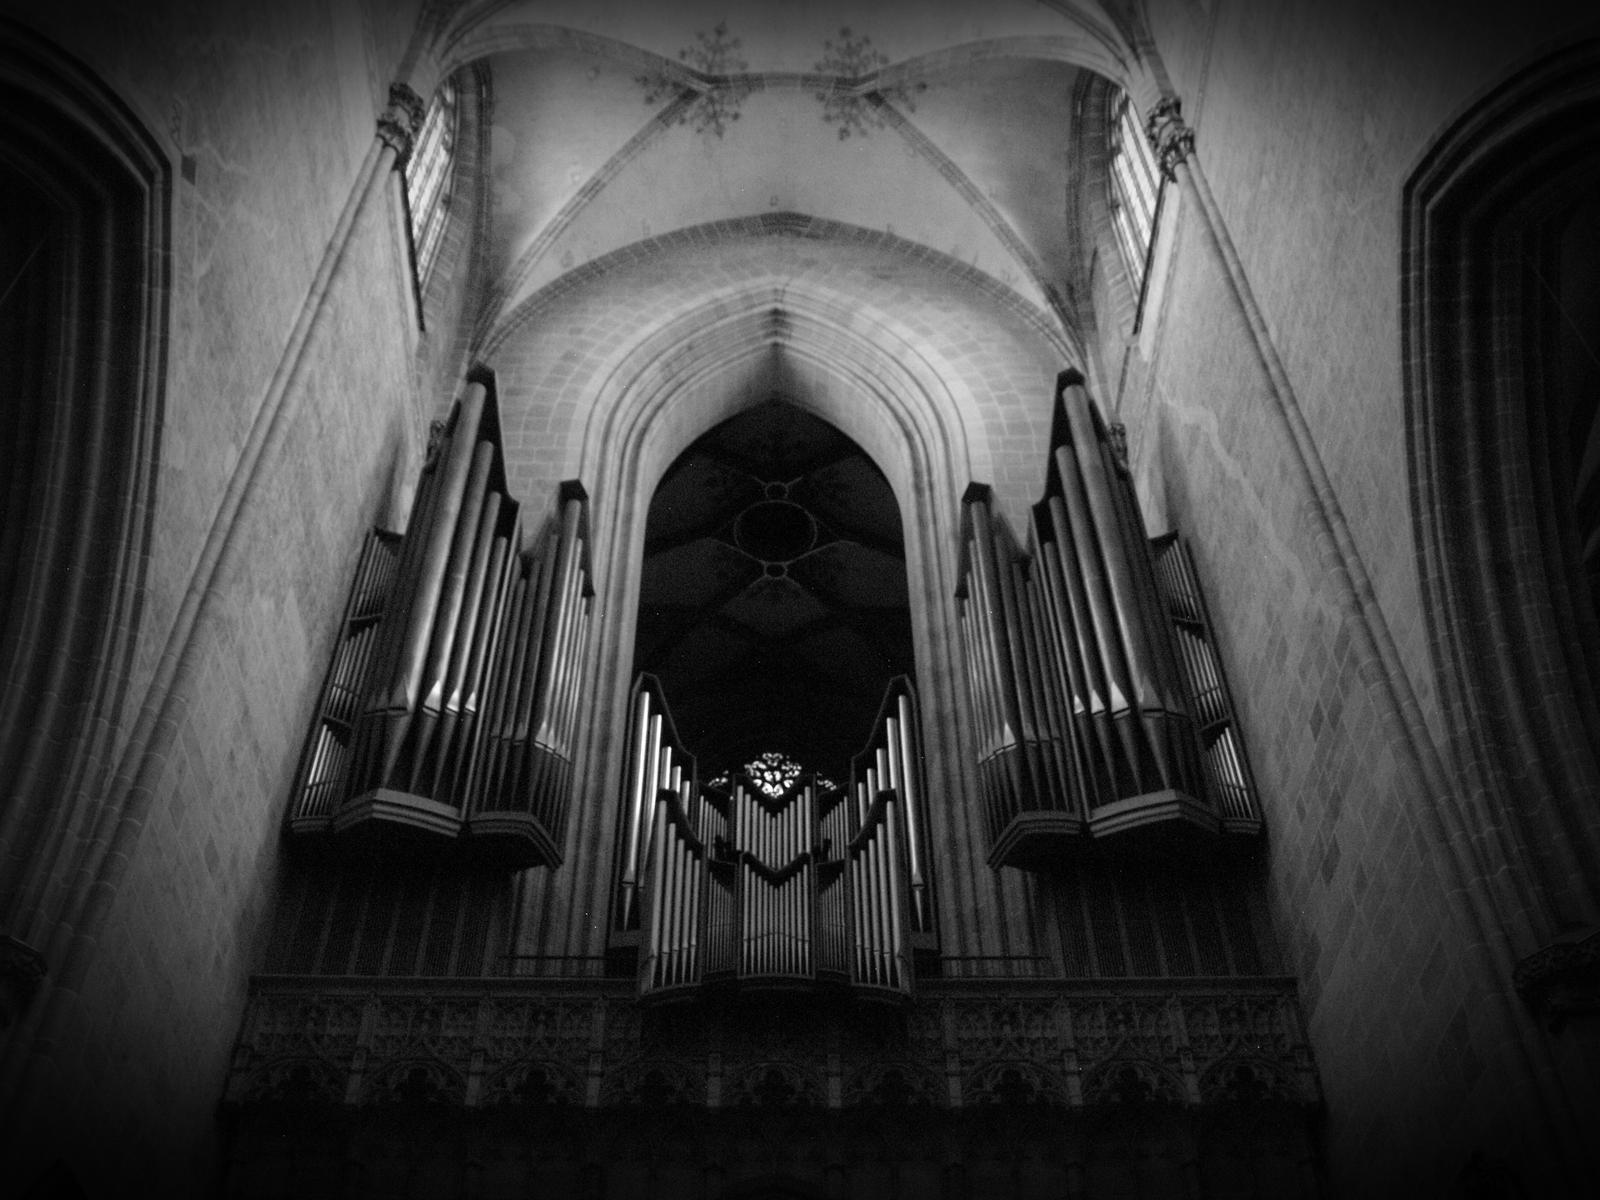 Interior Of A Gothic Cathedral 02 By LordChatter